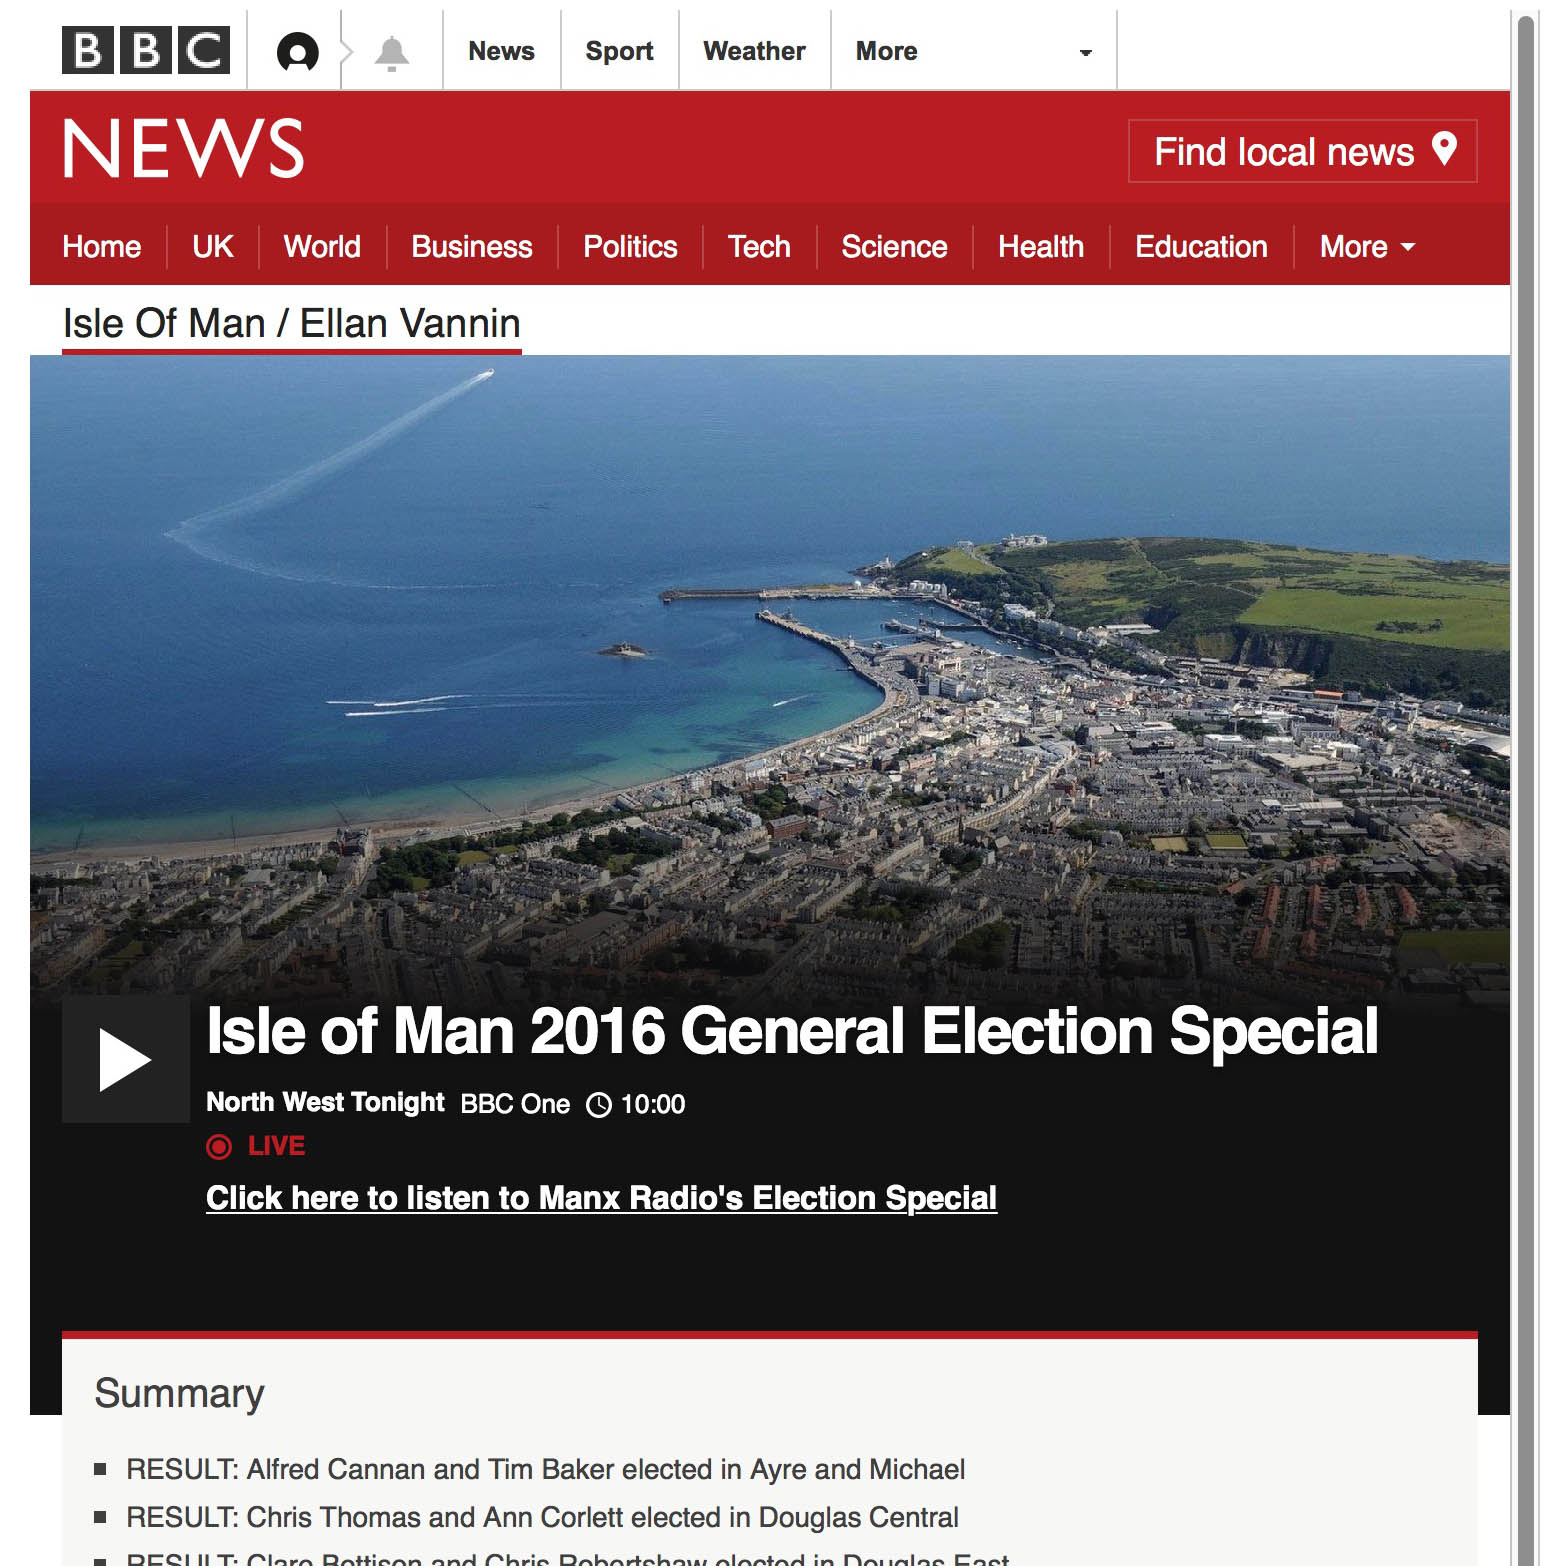 http---www.bbc.co.uk-news-live-world-europe-isle-of-man-37361890 (20160923).jpg